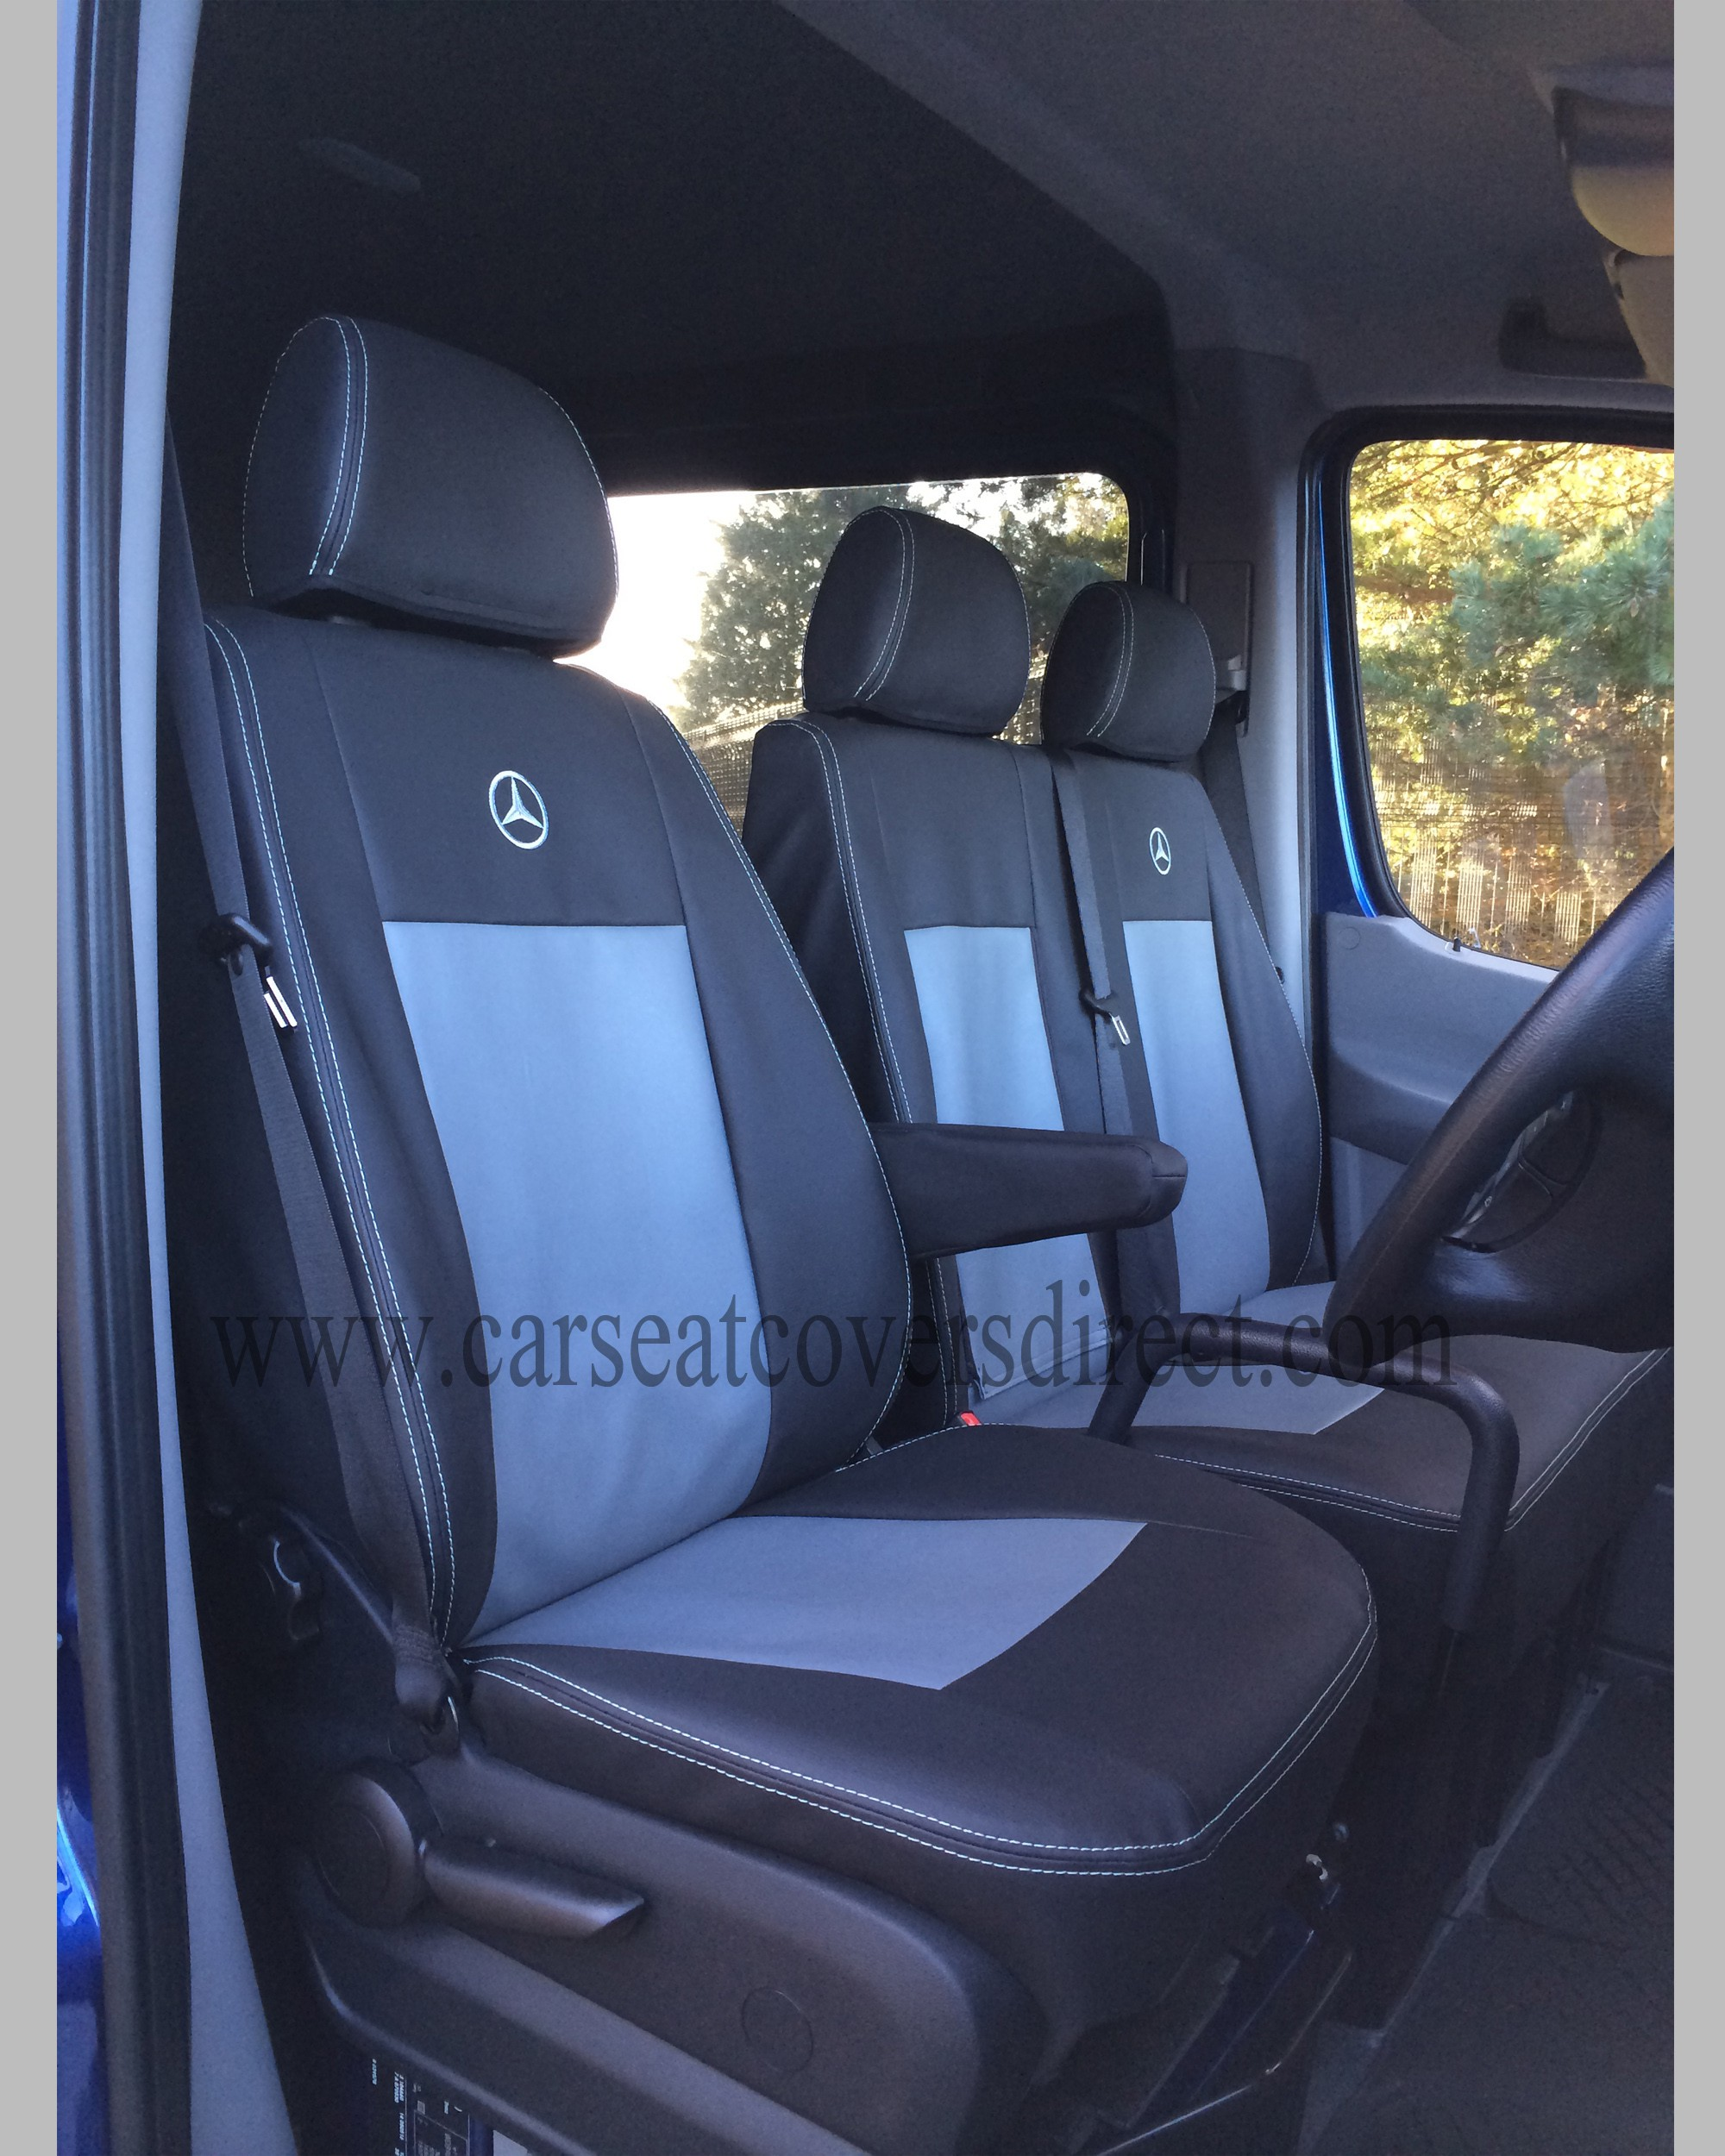 sprinter van seat covers velcromag. Black Bedroom Furniture Sets. Home Design Ideas